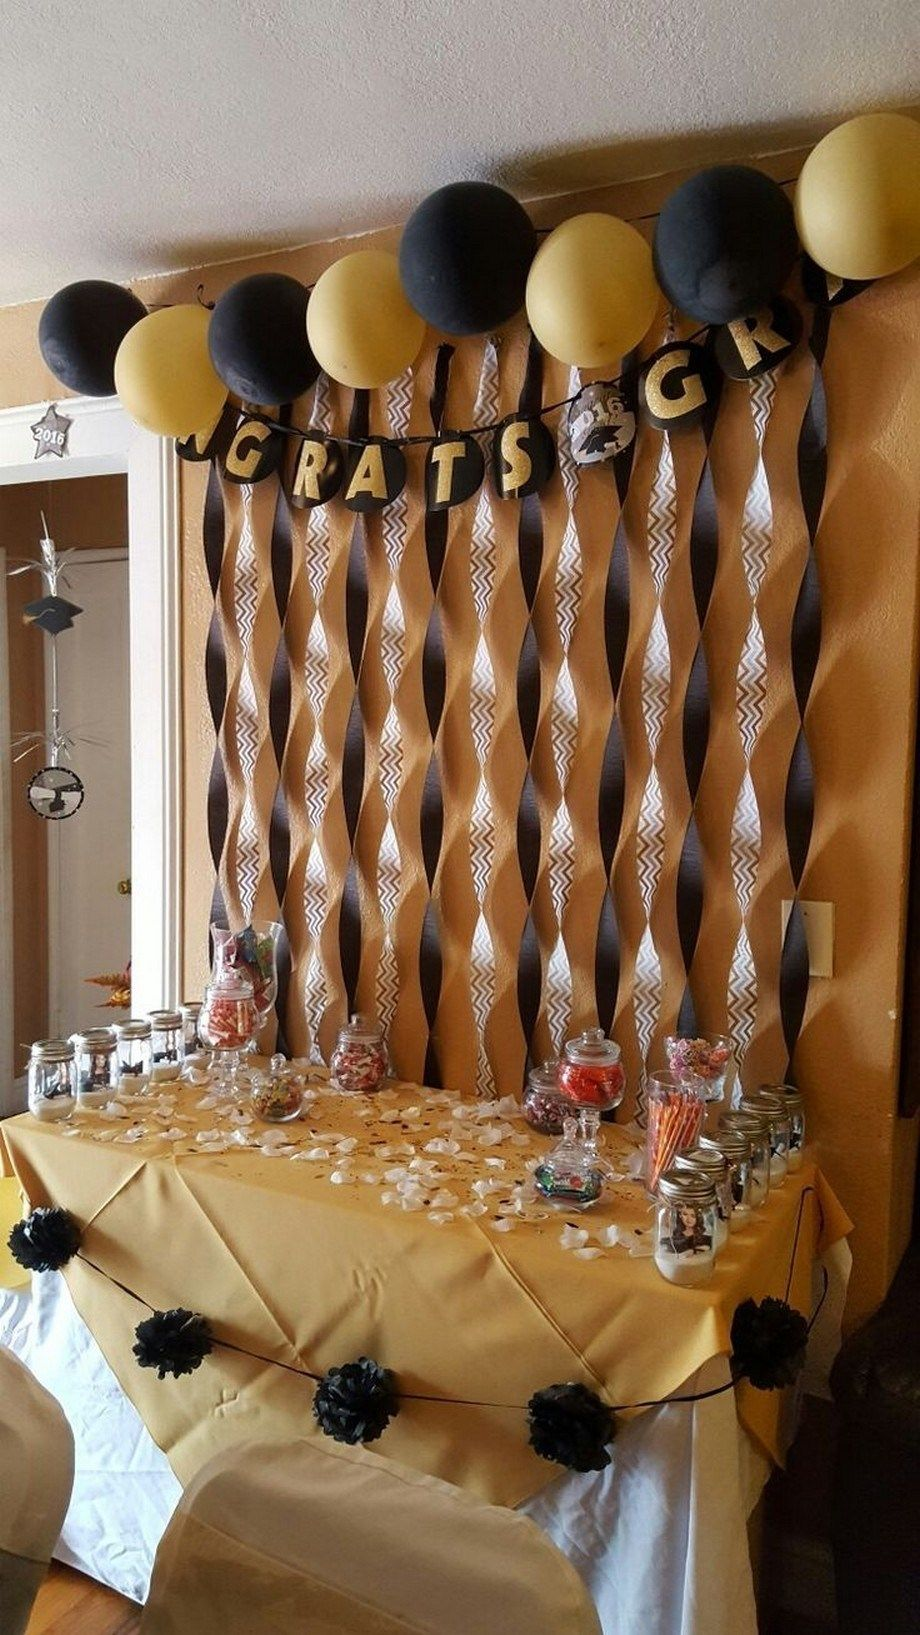 44 Awesome Graduation Party Decoration Ideas Graduationpartydecoratio Graduation Party High College Graduation Party Decorations Graduation Party Centerpieces